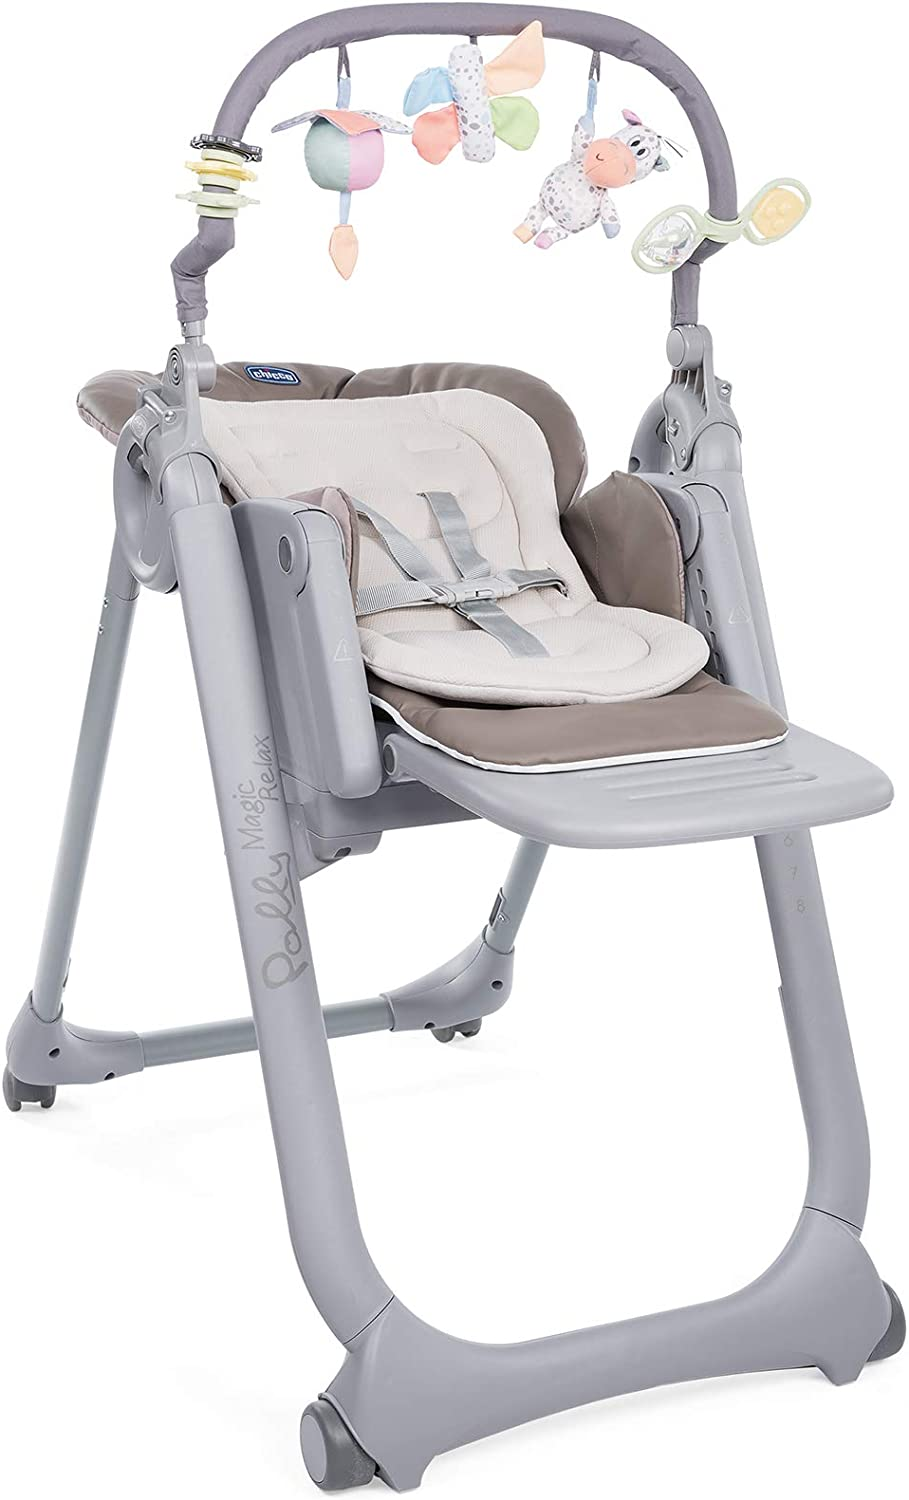 Chicco Polly Magic Relax Trona y hamaca evolutiva con barra de juegos, plegable y compacta, con 4 ruedas y freno, de 0 a 3 años, color marrón beige (Cocoa)